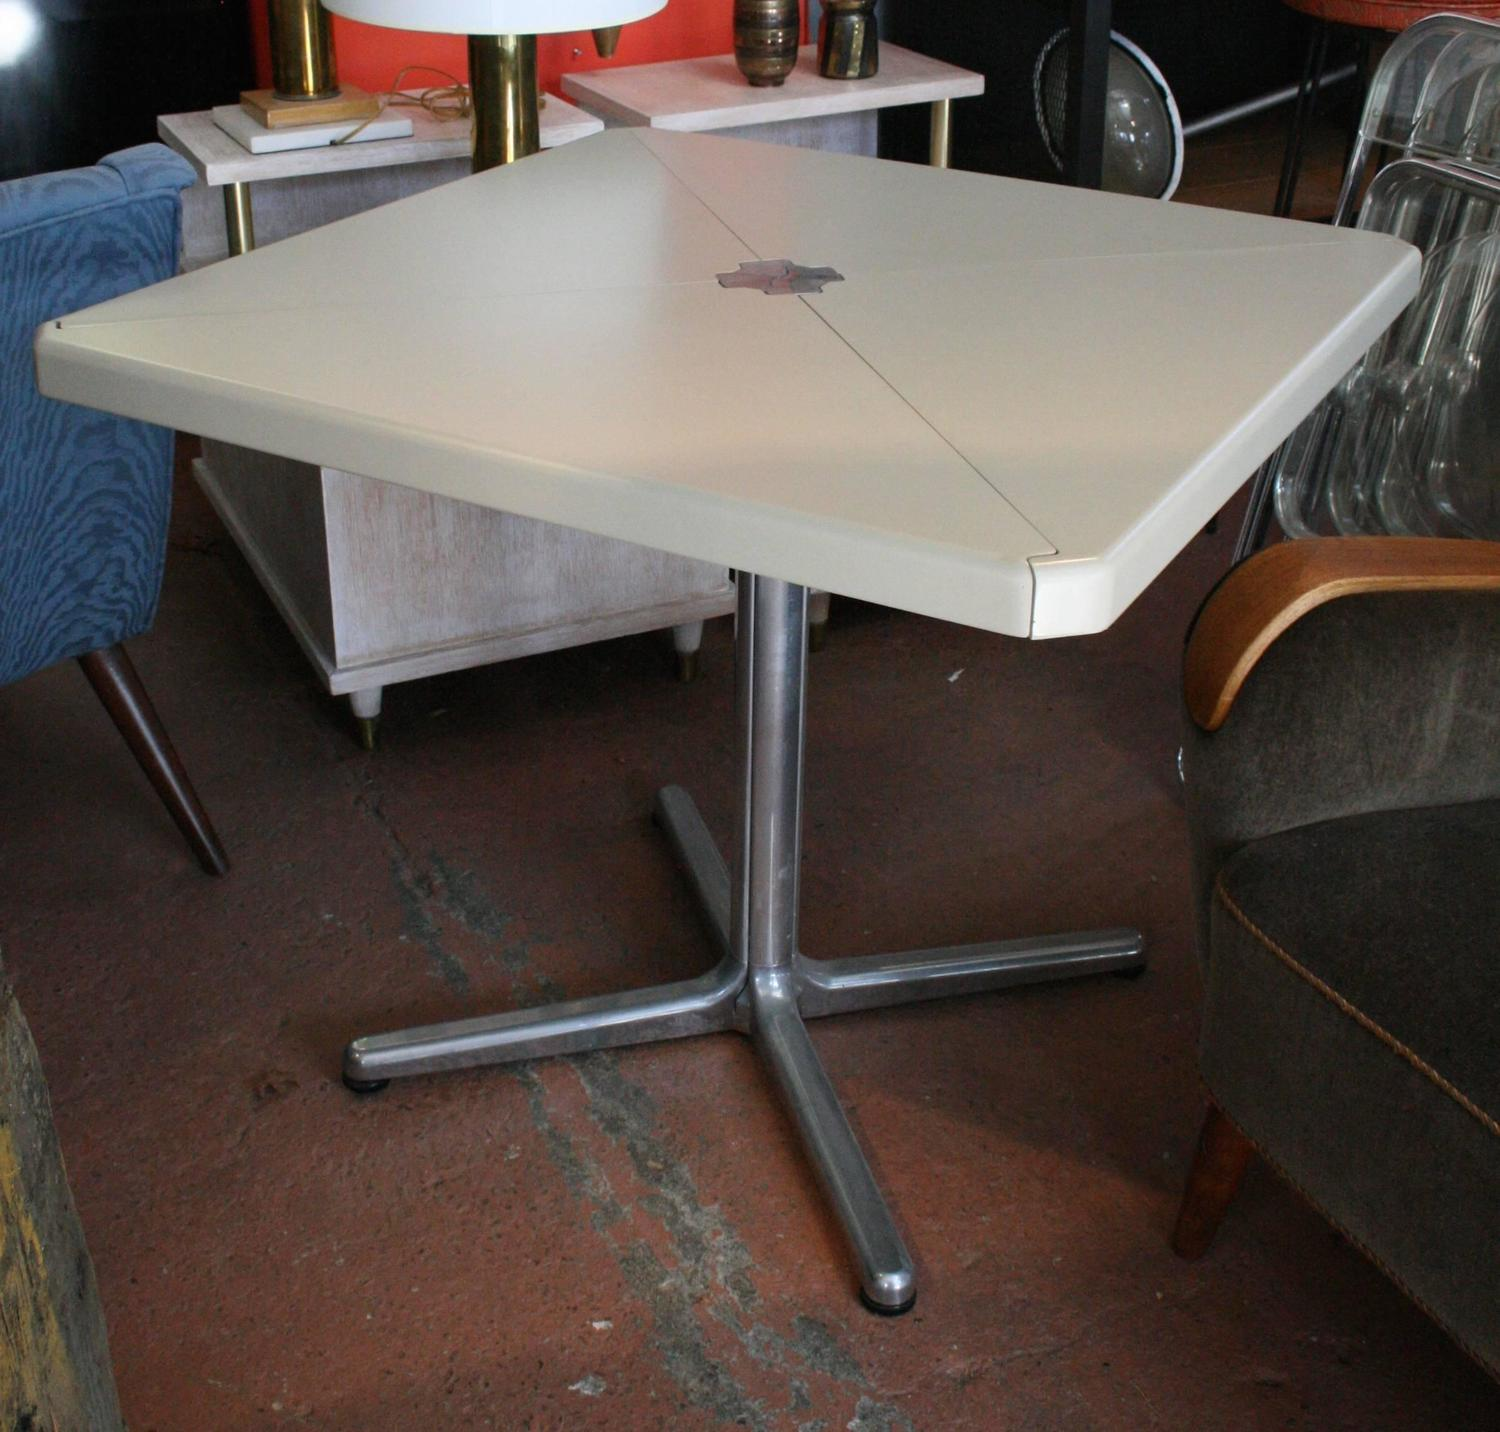 Piretti Folding Table And Chairs By Castelli For Sale At 1stdibs